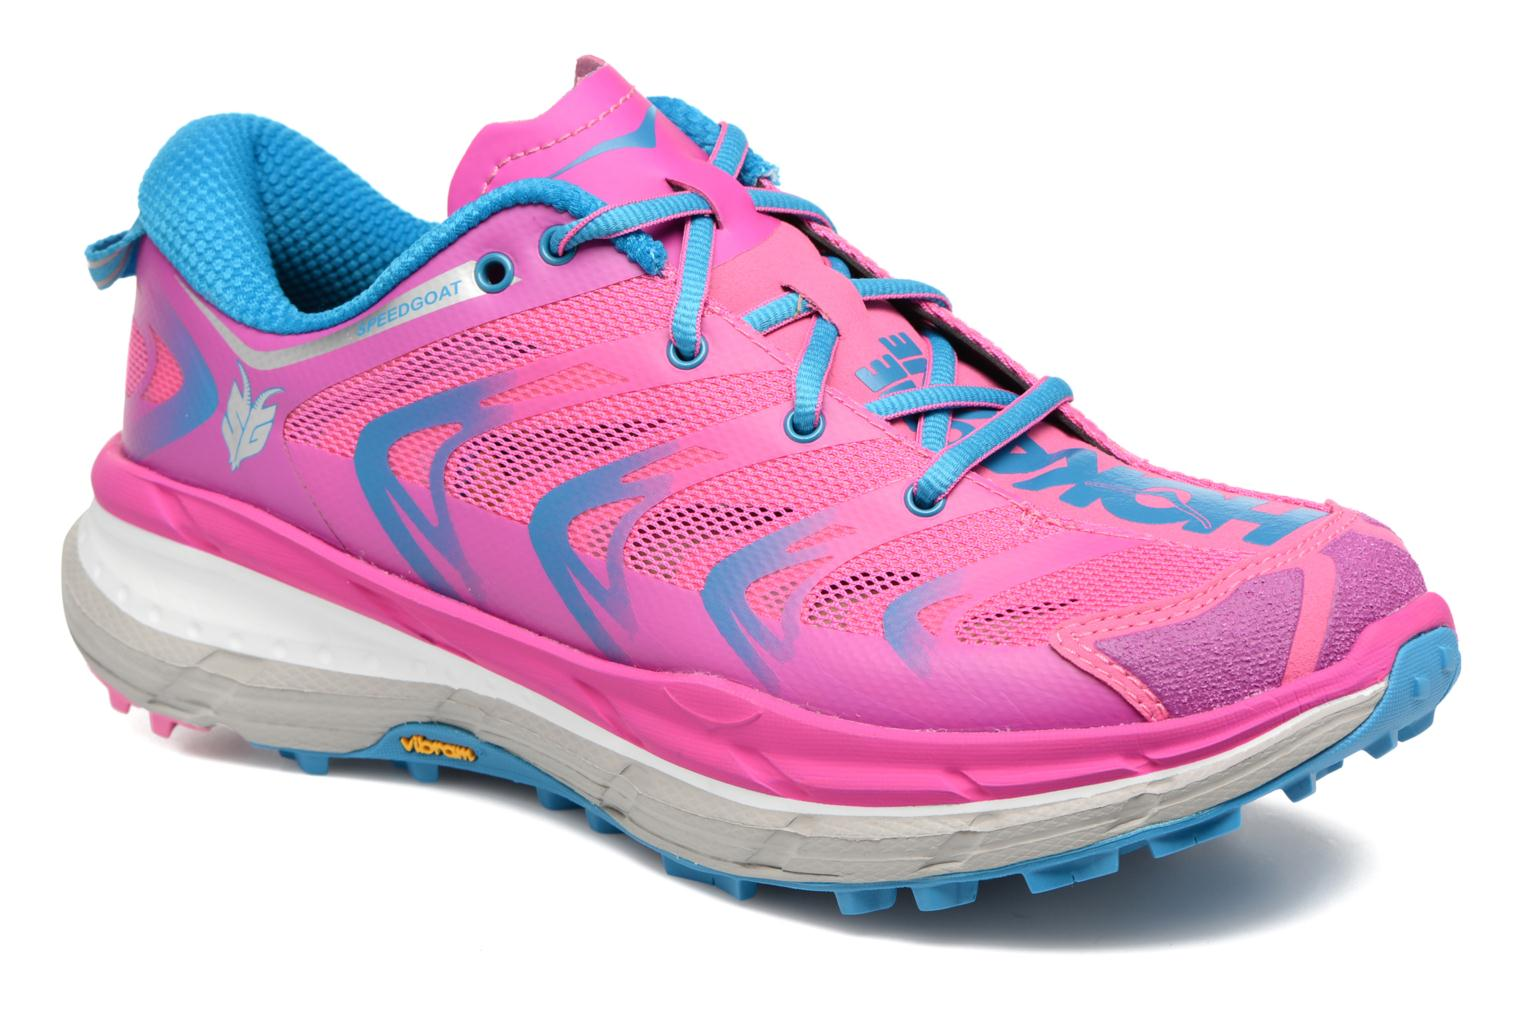 Chaussures de sport Hoka One One Speedgoat W Rose vue détail/paire